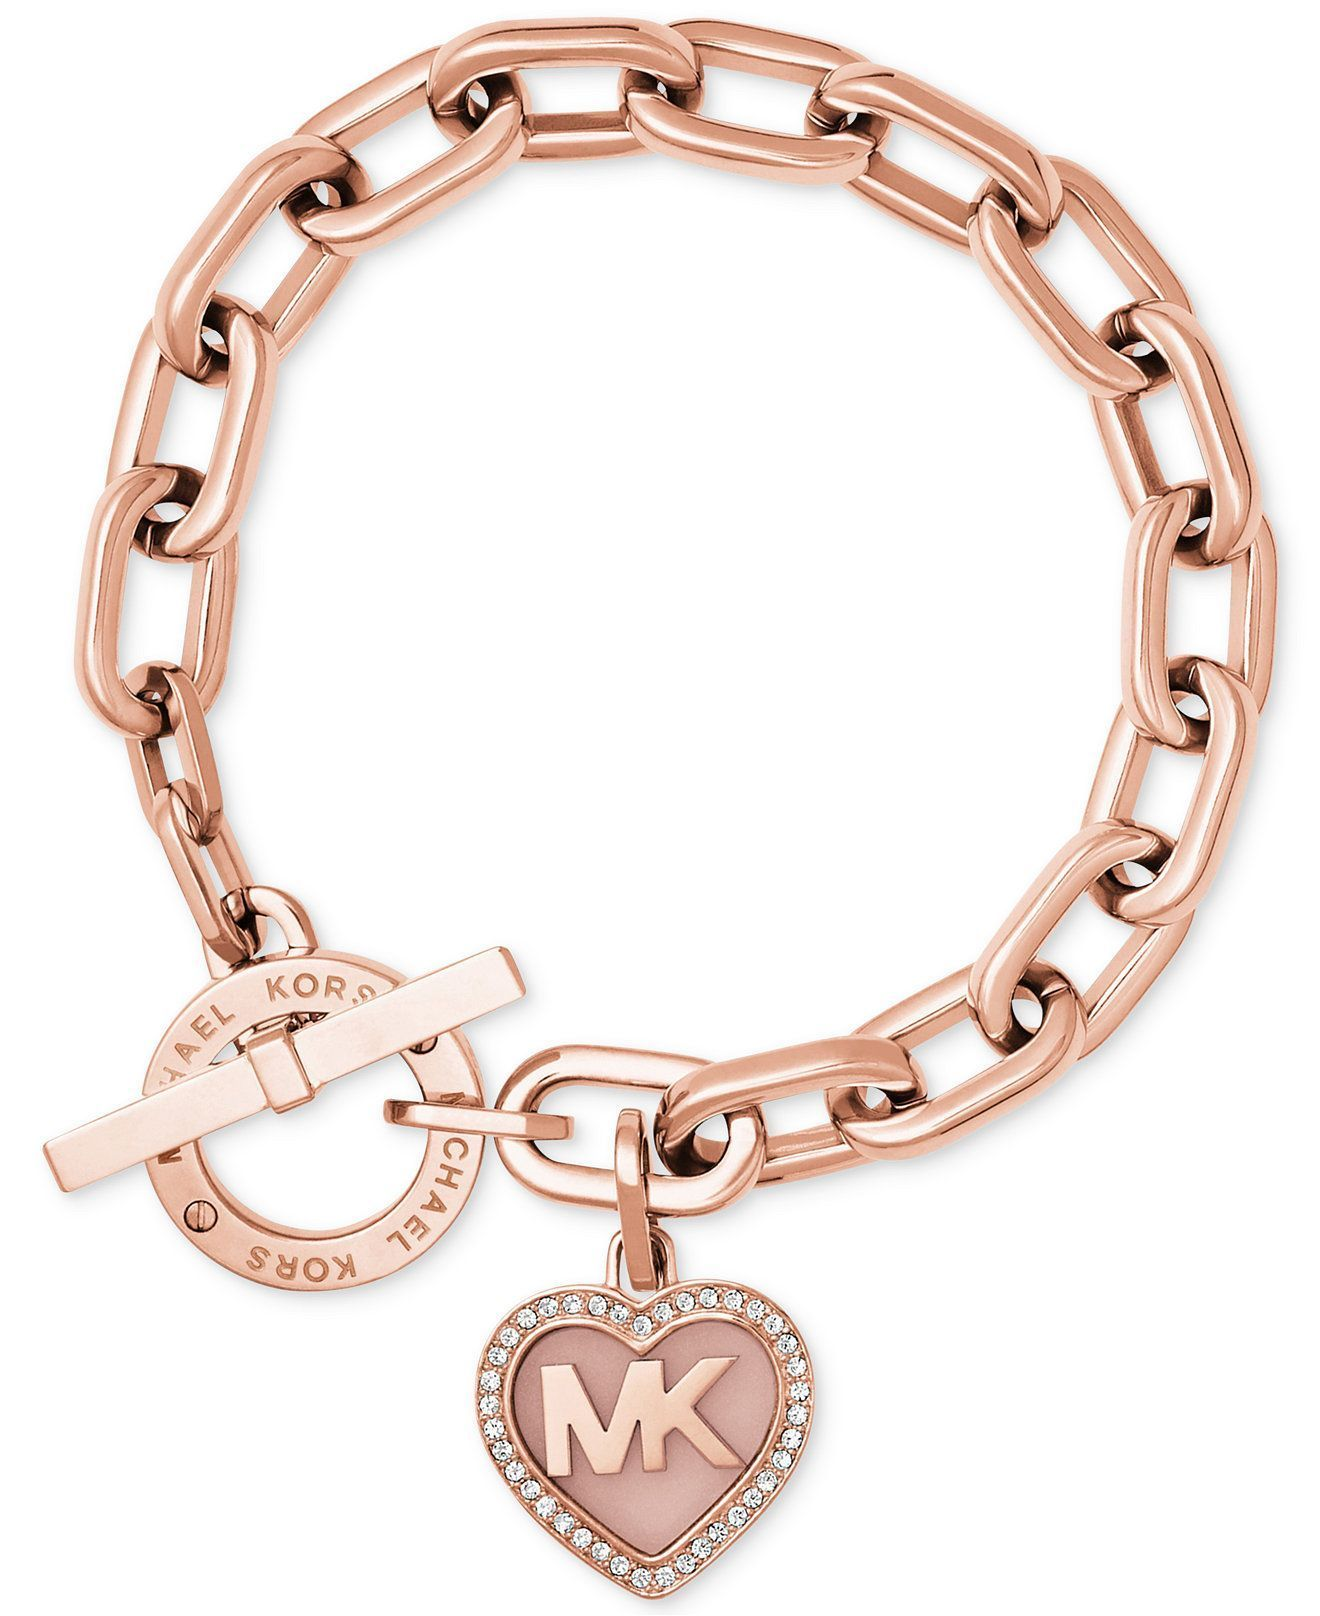 Michael Kors Rose GoldTone Pav Logo Heart Toggle Bracelet